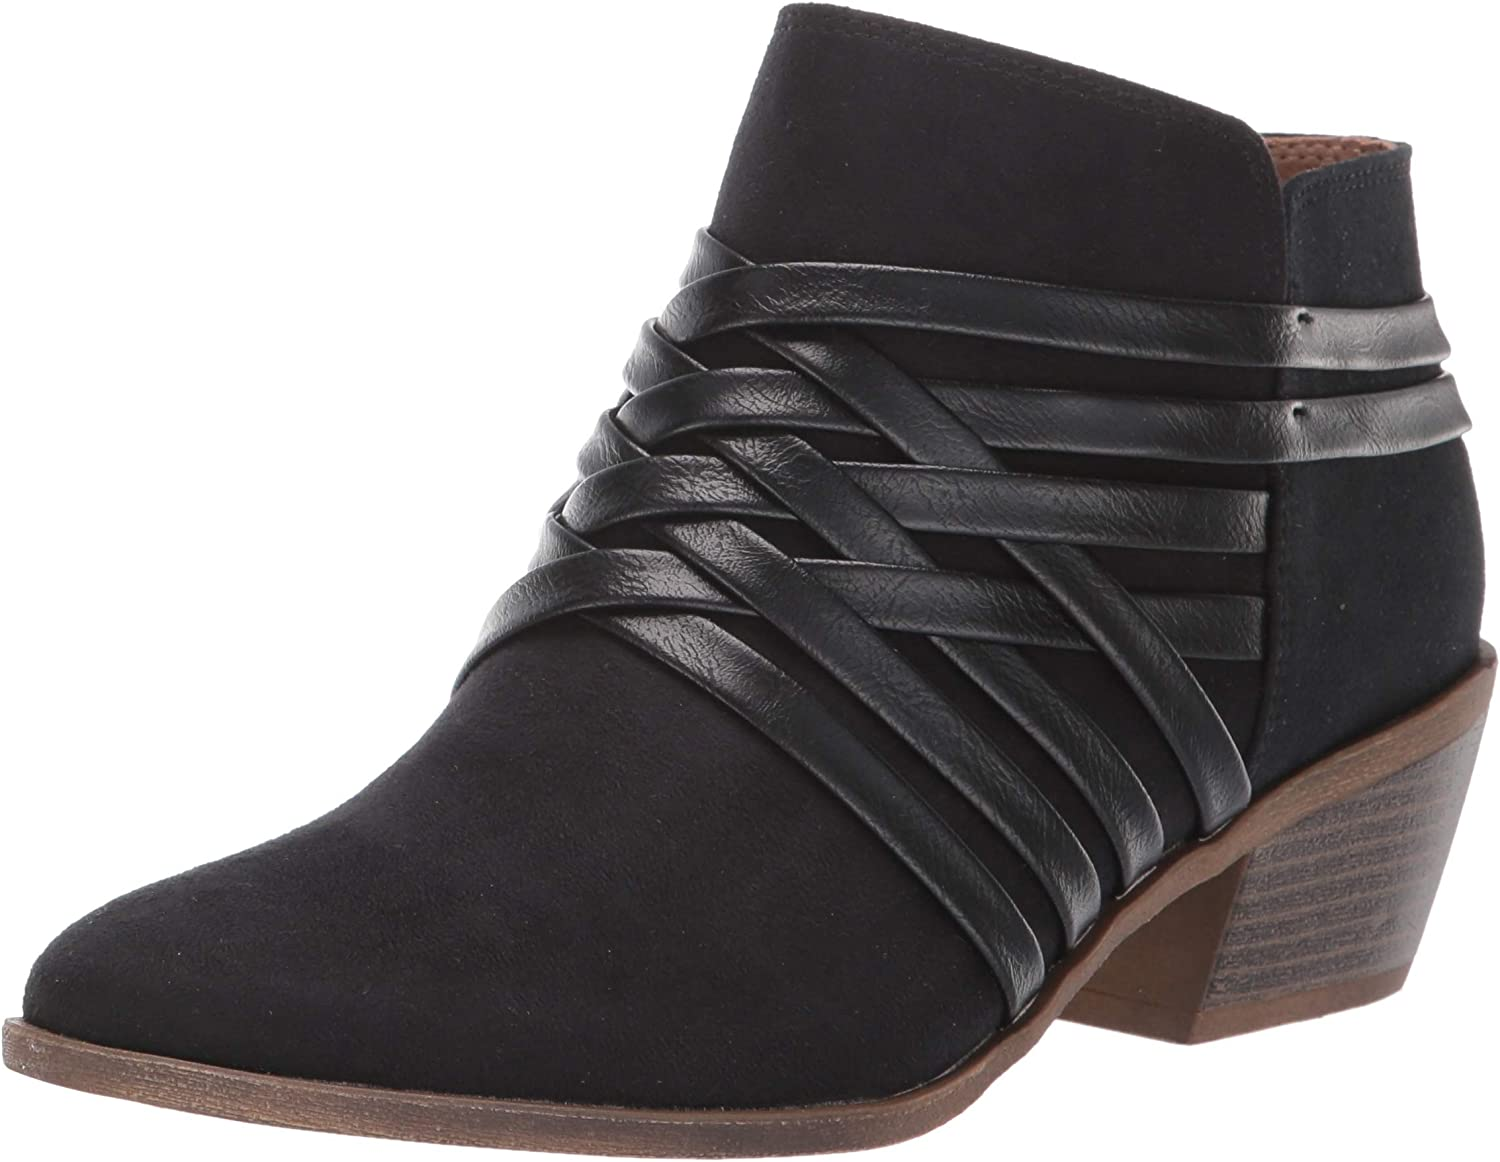   LifeStride Women's Prairie Ankle Boot   Ankle & Bootie